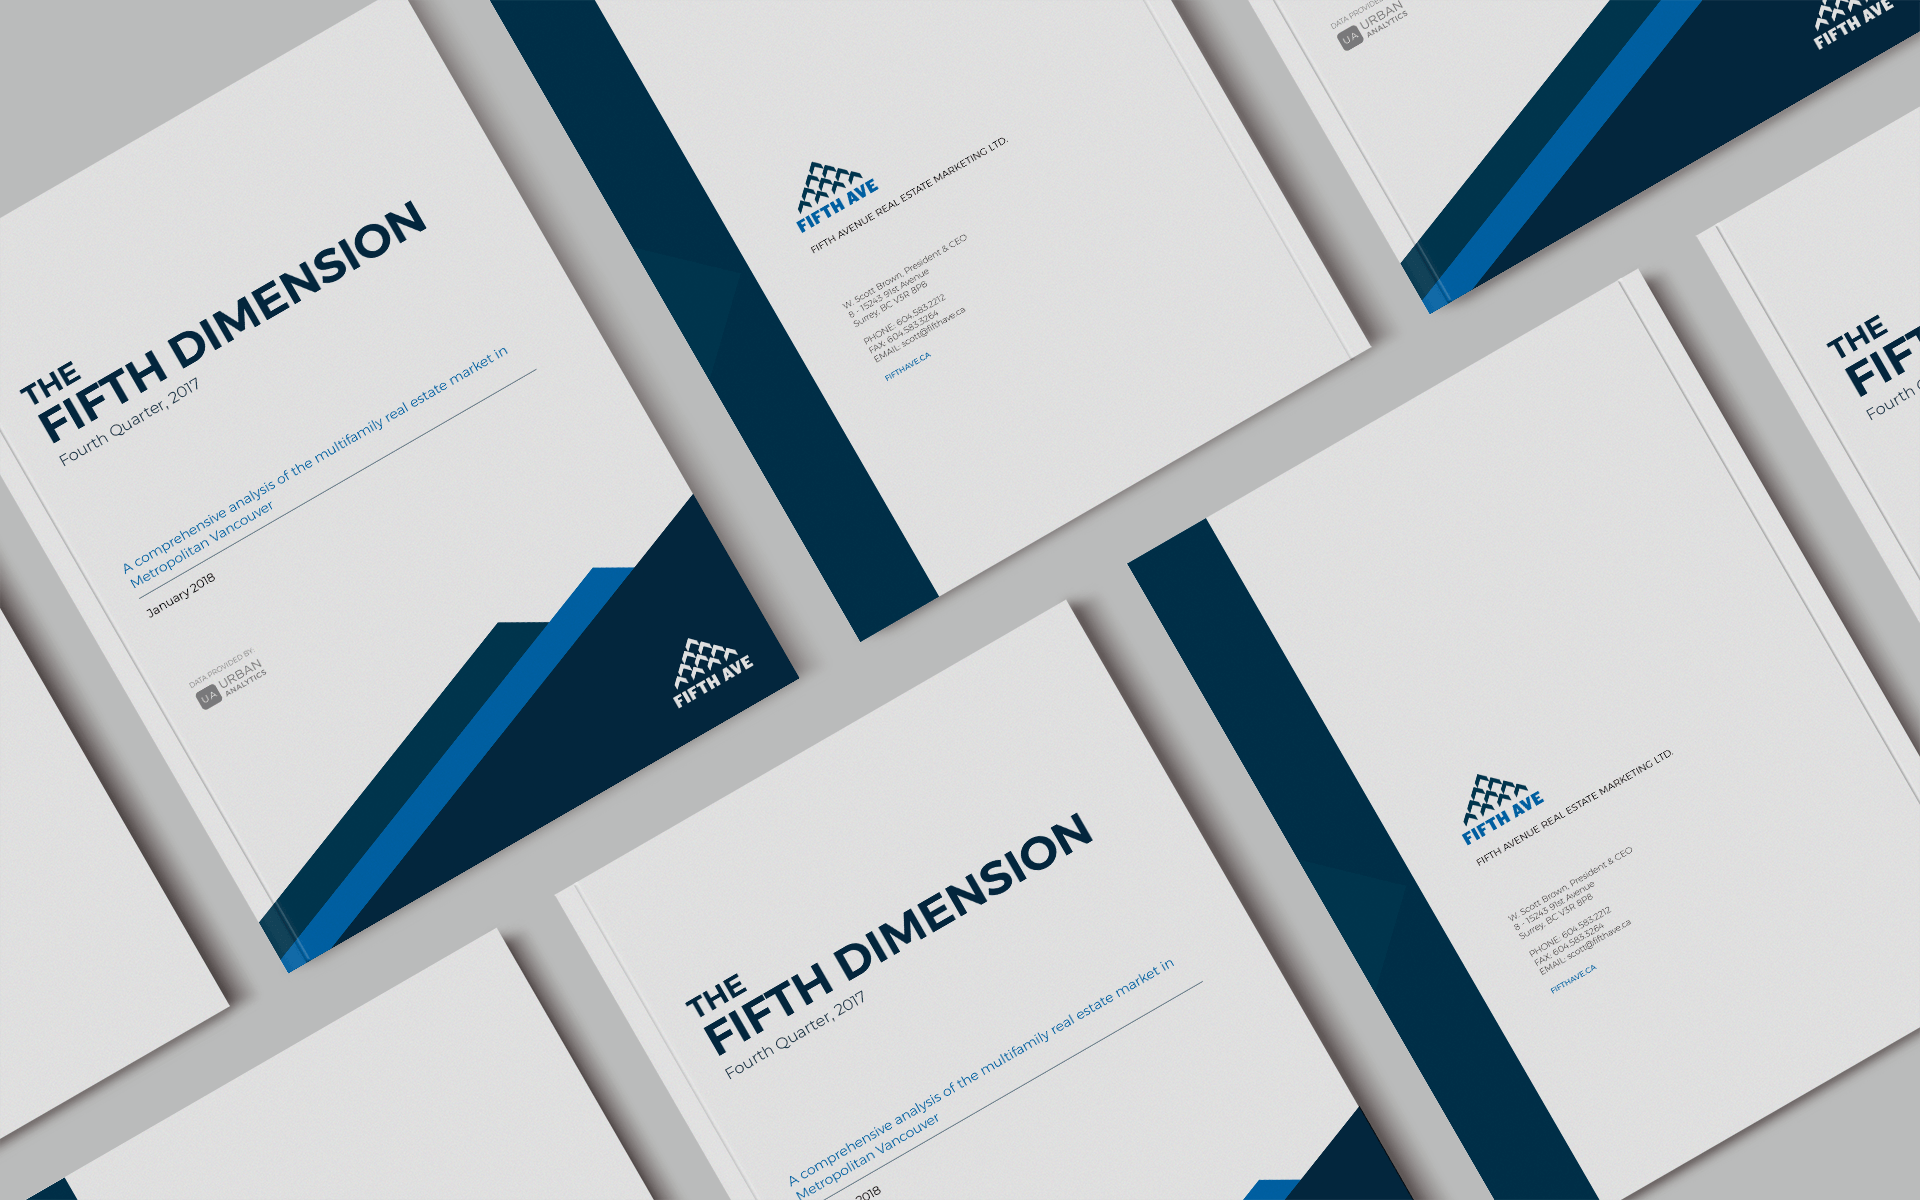 FifthDimension_Mockup_1920px